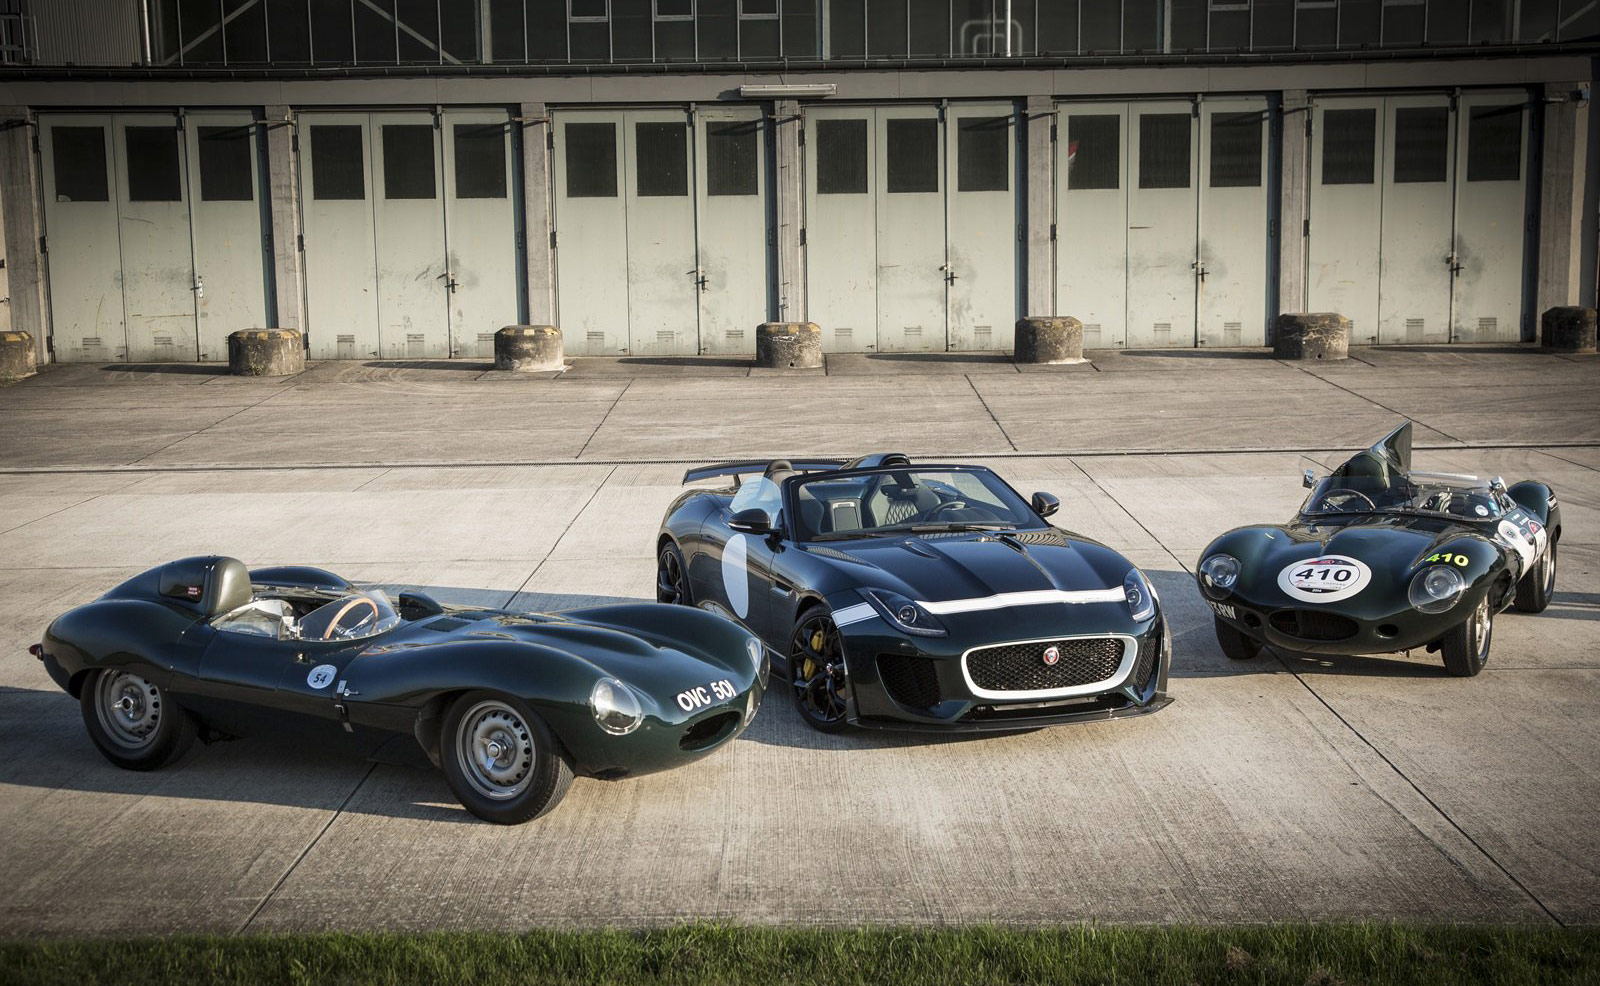 First Impression Jaguar F Type Project 7 Gtspirit 1950s S All Of This Was Achieved Despite An Under Privileged Childhood In Britain During The Depression And Education Cut Short At Age 14 By Death His